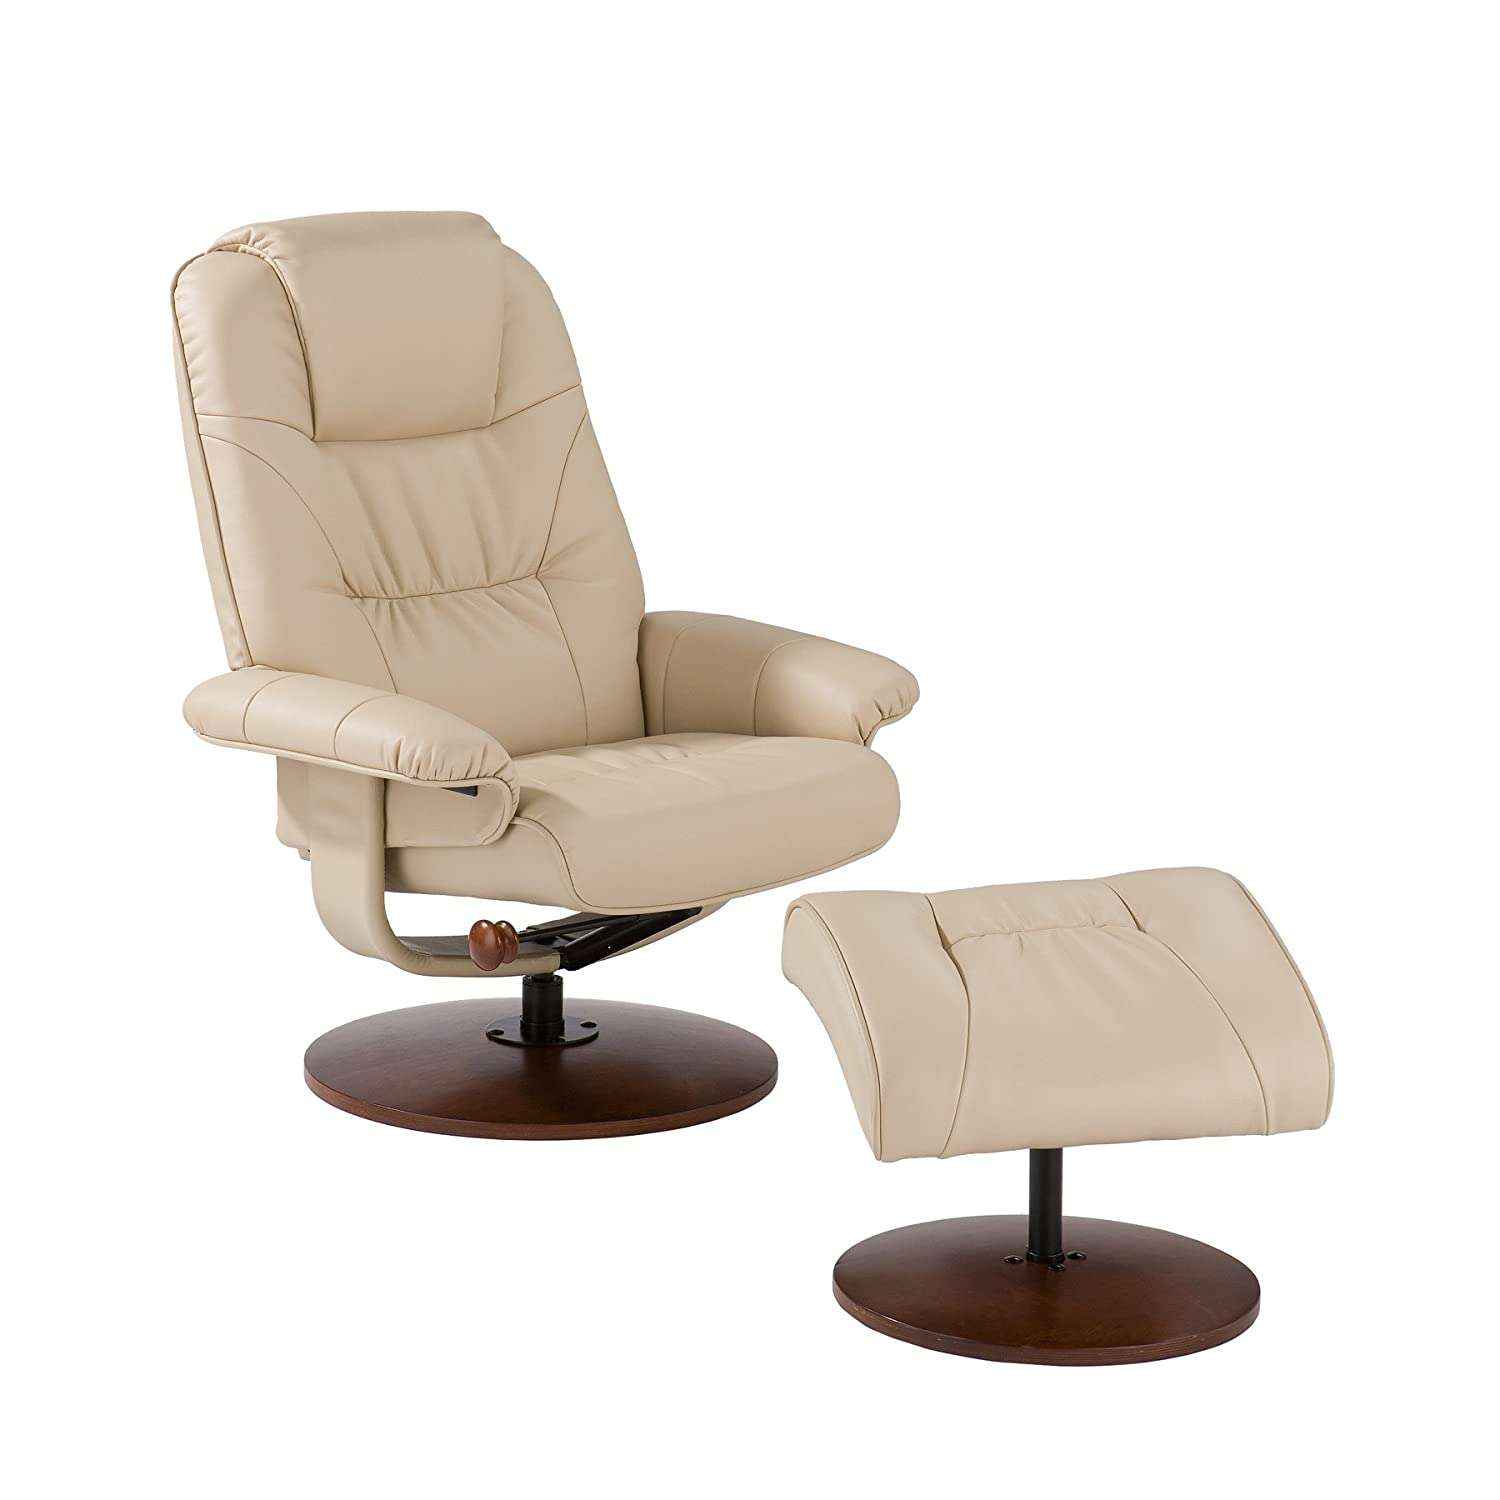 traditonal way big recliner smith by tall products chair three brothers and motorized furniture wolf